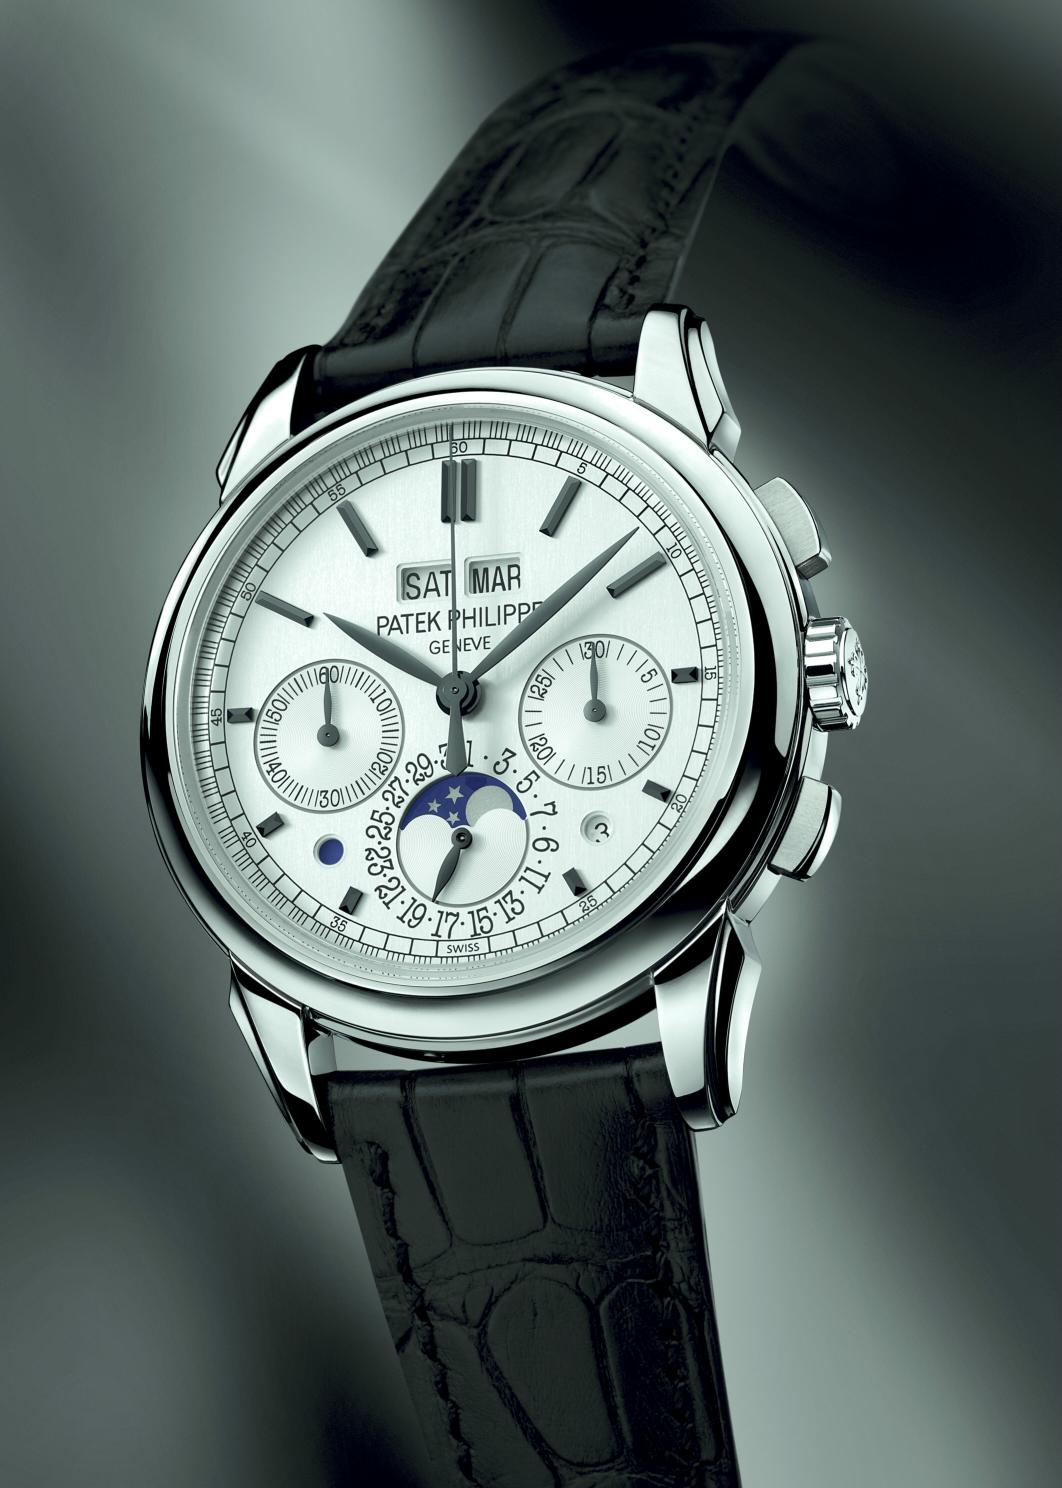 Horolograph a photographic history of patek philippe perpetual calendar chronographs for Patek watches